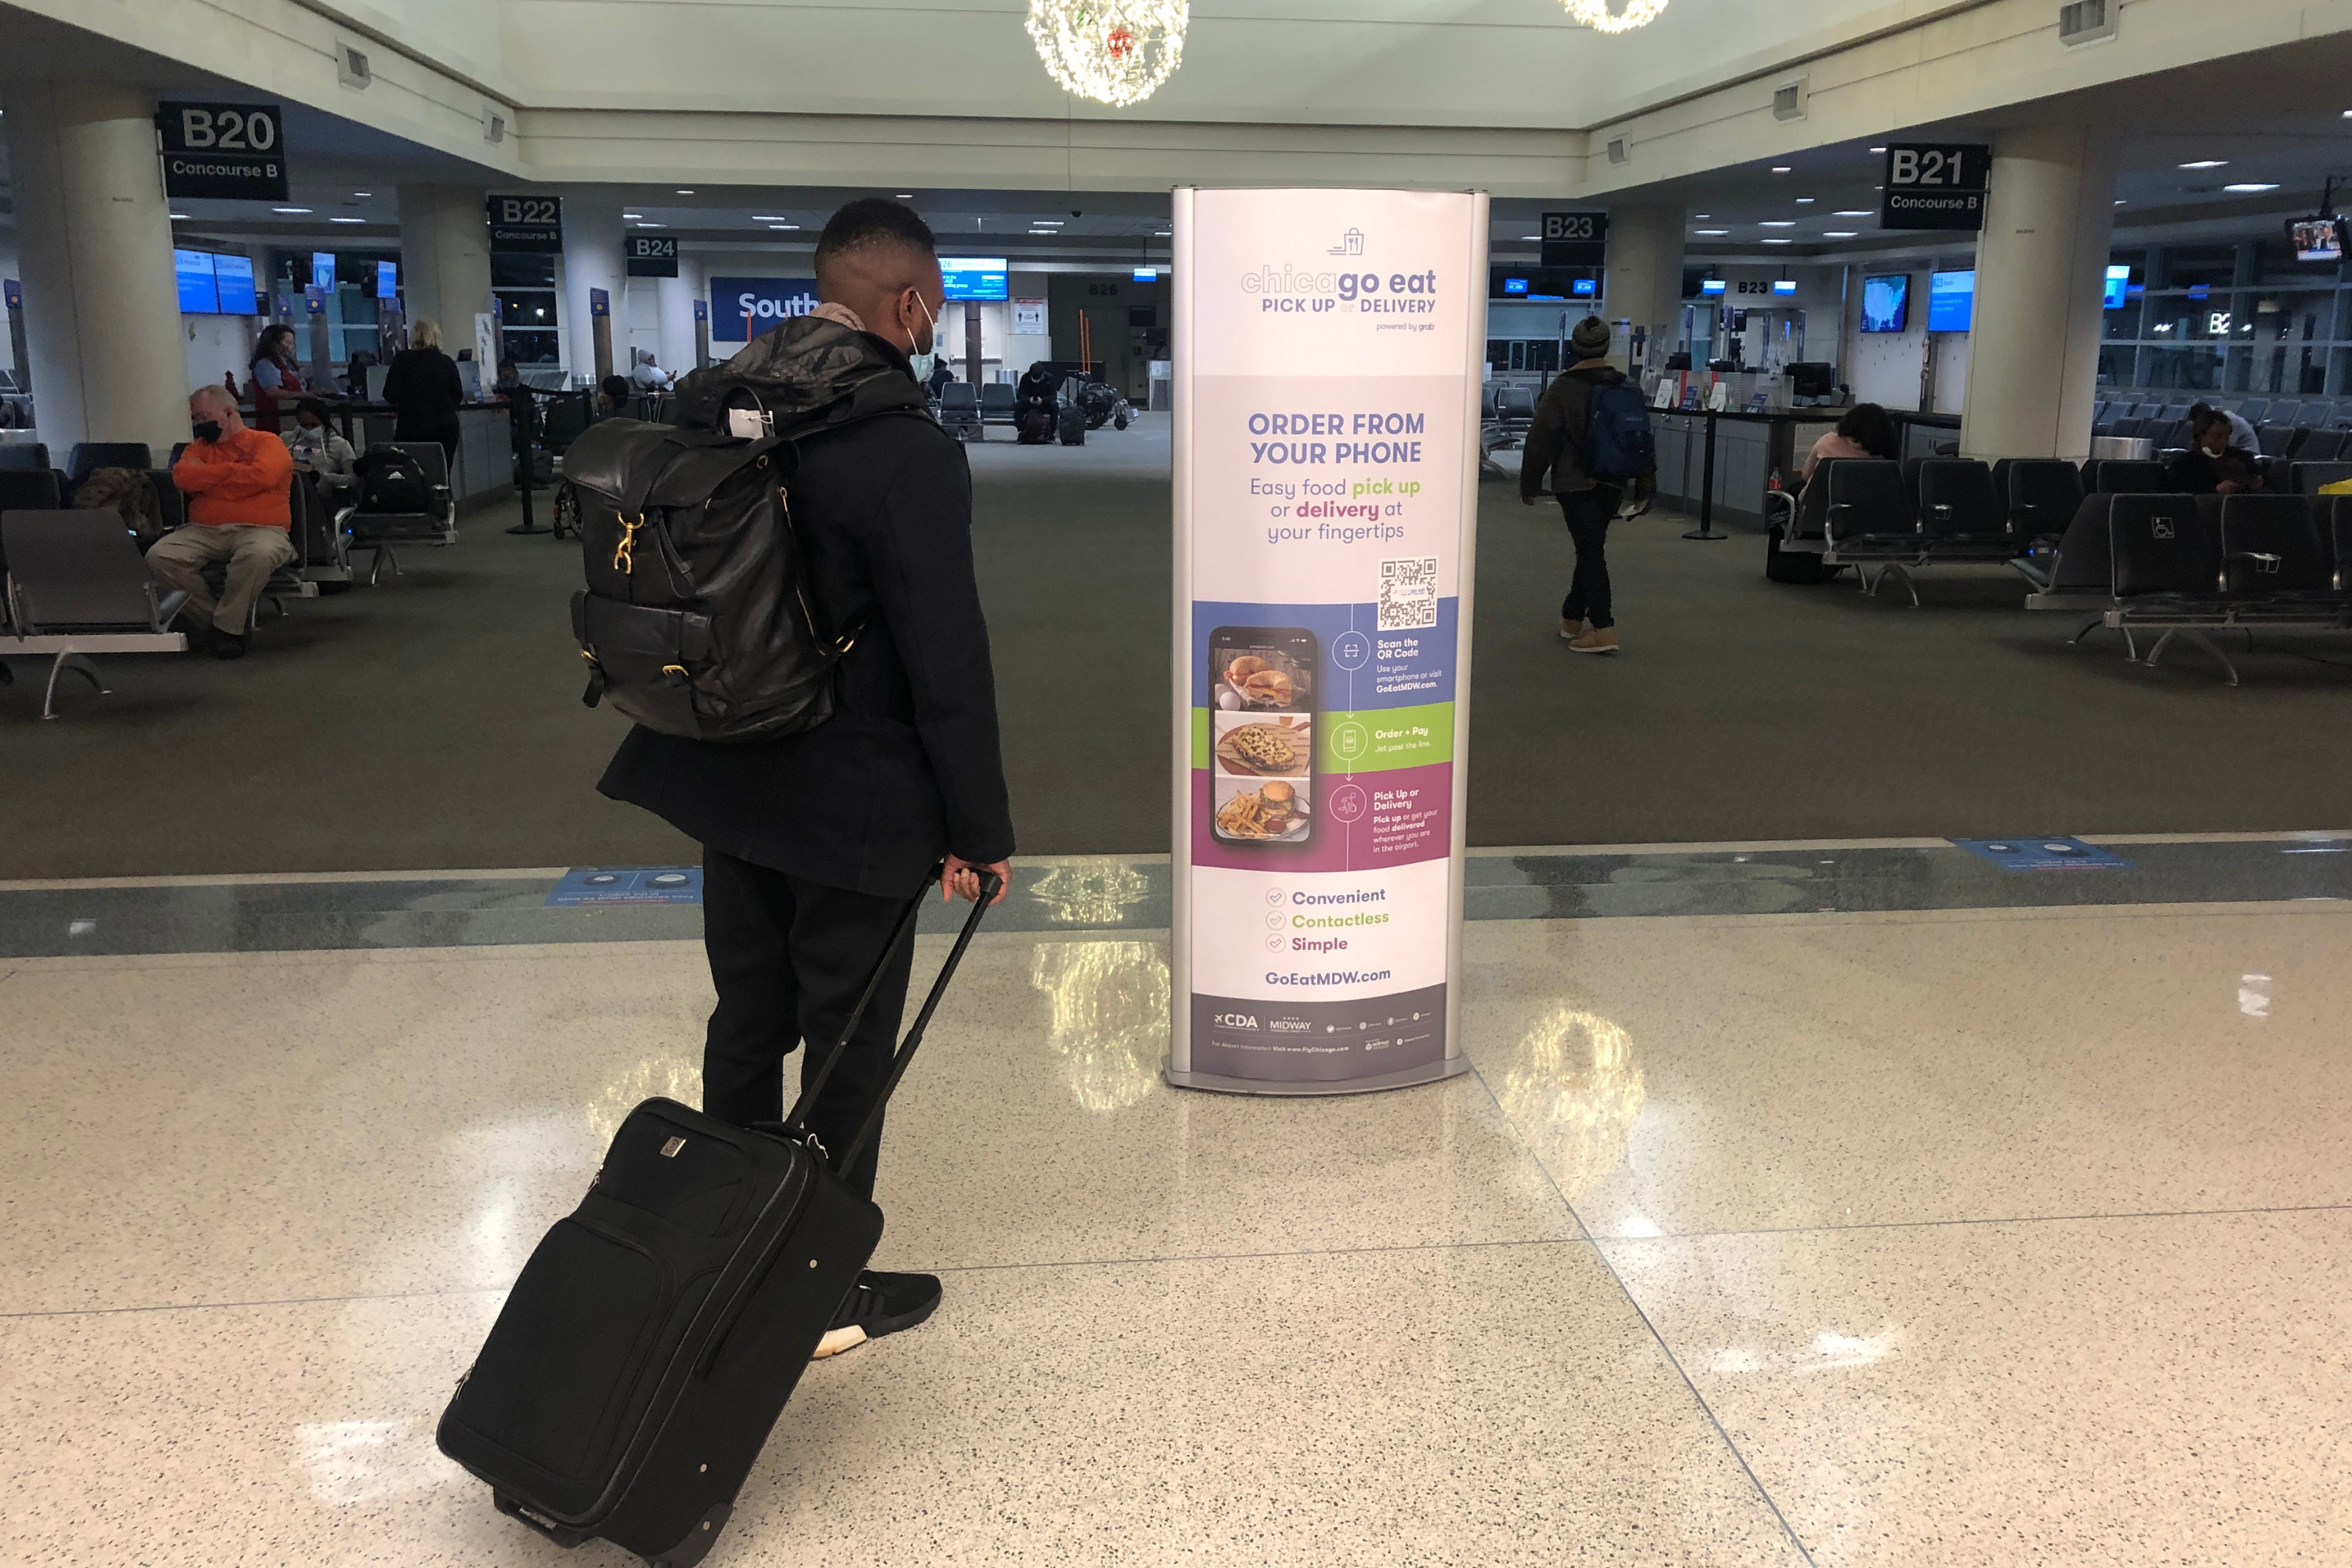 SAVE TIME AND SKIP THE LINE – CONTACTLESS ORDERING FOR PICK UP OR DELIVERY KICKS OFF AT CHICAGO MIDWAY INTERNATIONAL AIRPORT